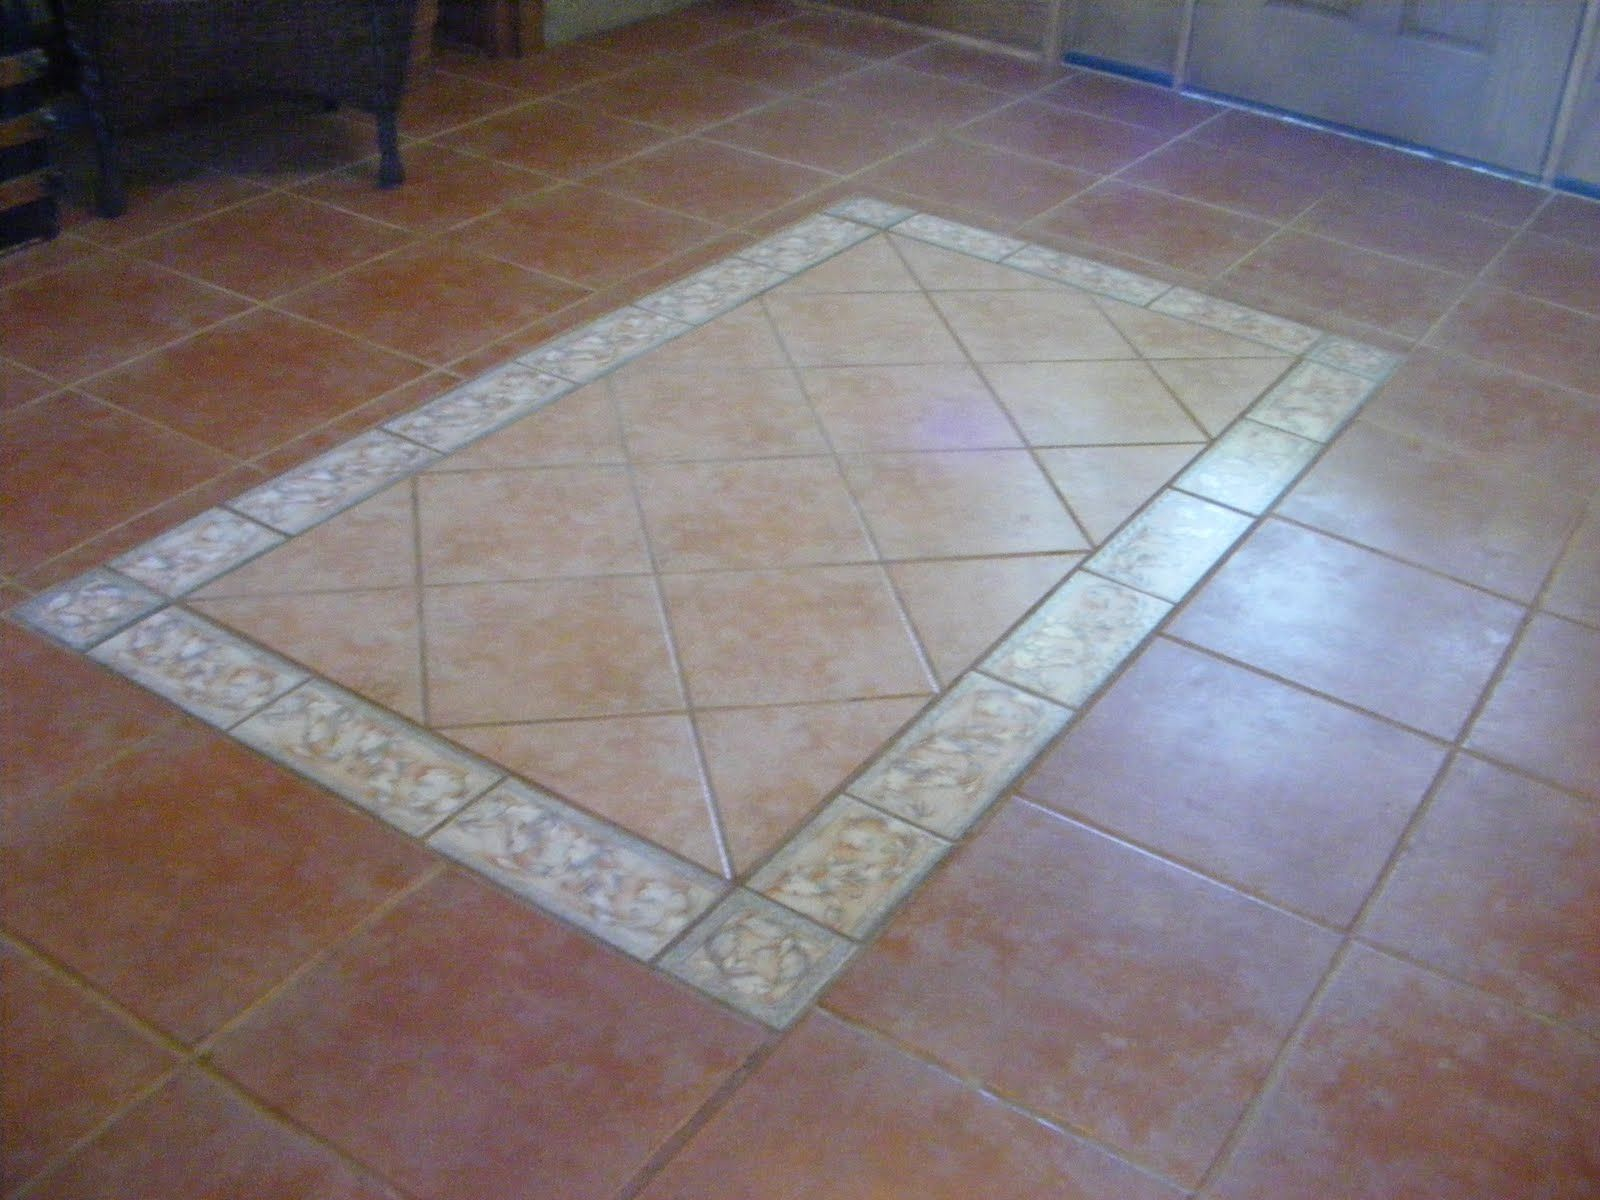 decoration floor tile design patterns of new inspiration On floor tile pattern ideas